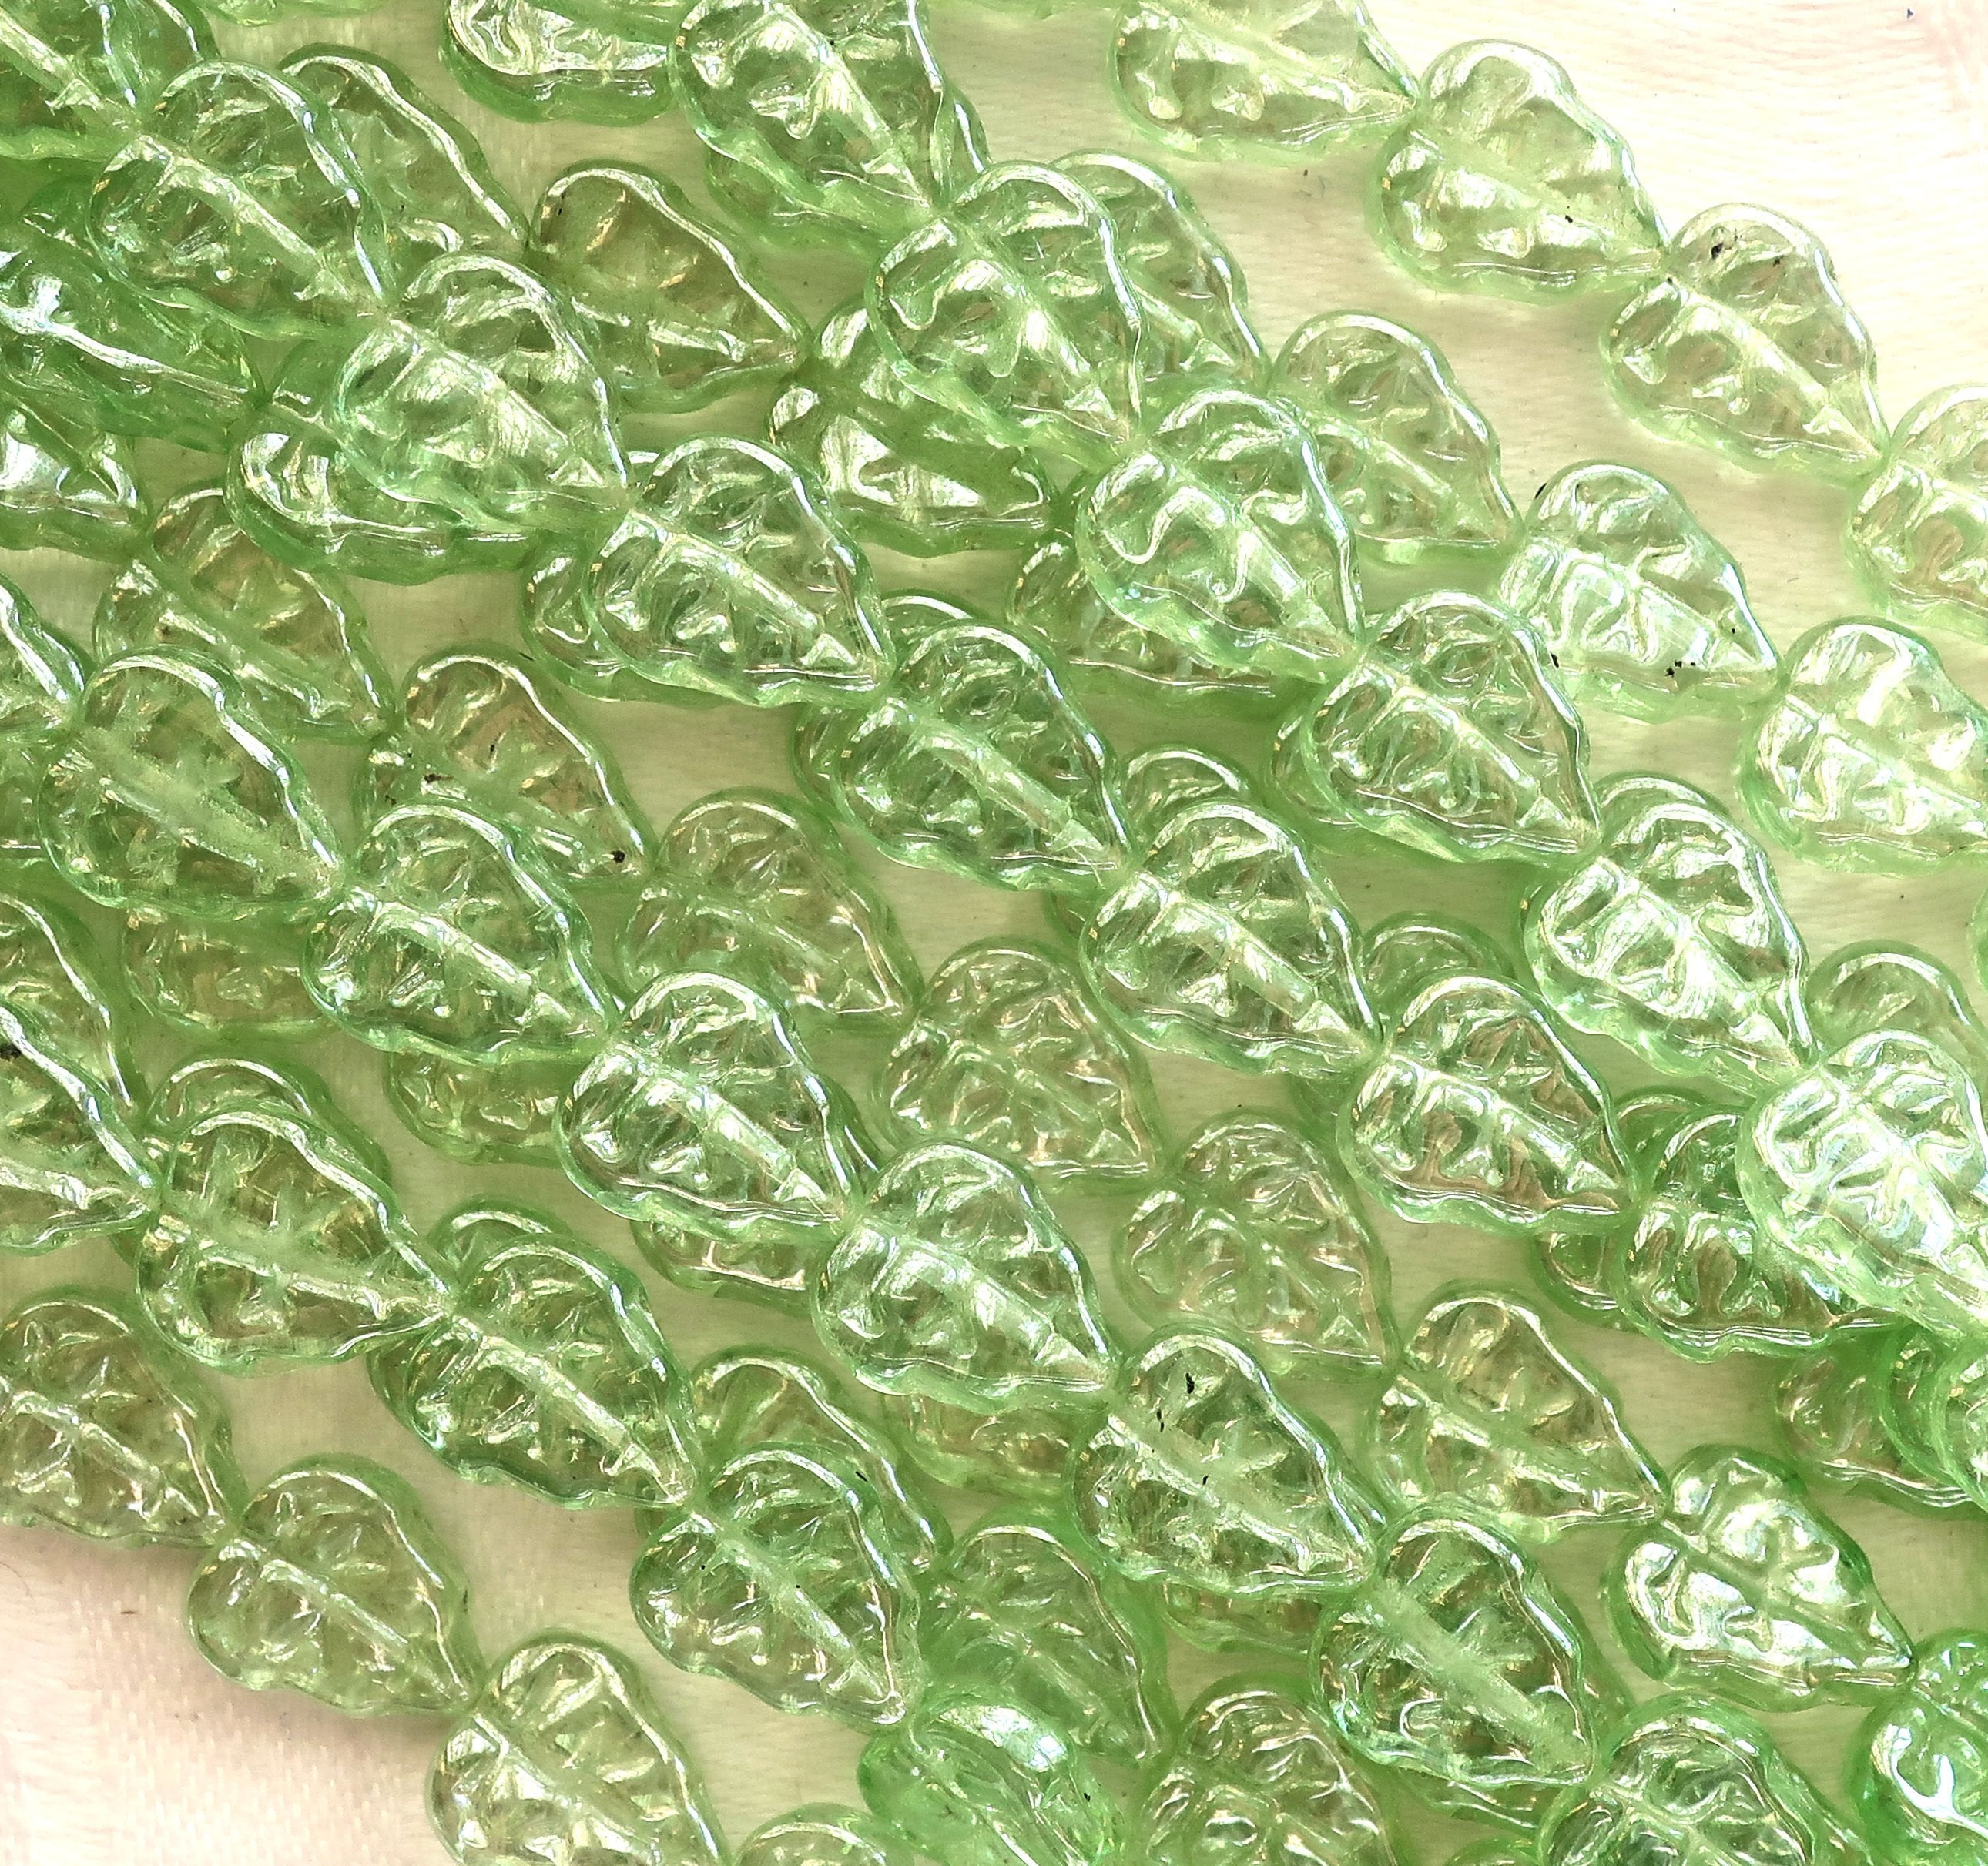 25 Beads Clouded Leaf Green and Crystal Clear Czech Diamond Beads Item 5143